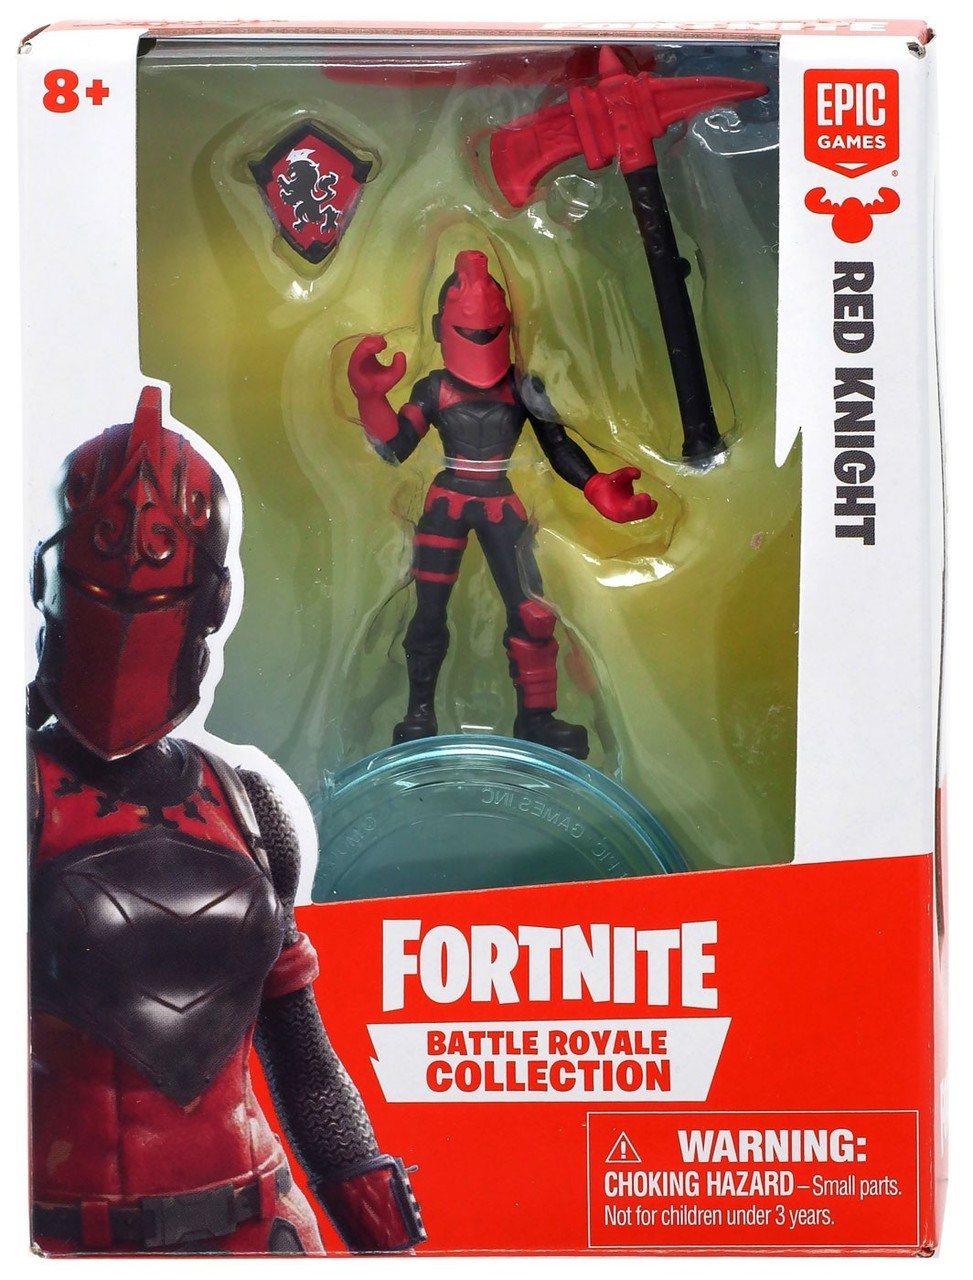 34055b1e67d Fortnite Epic Games Battle Royale Collection Red Knight 2 Mini Figure Moose  Toys - ToyWiz